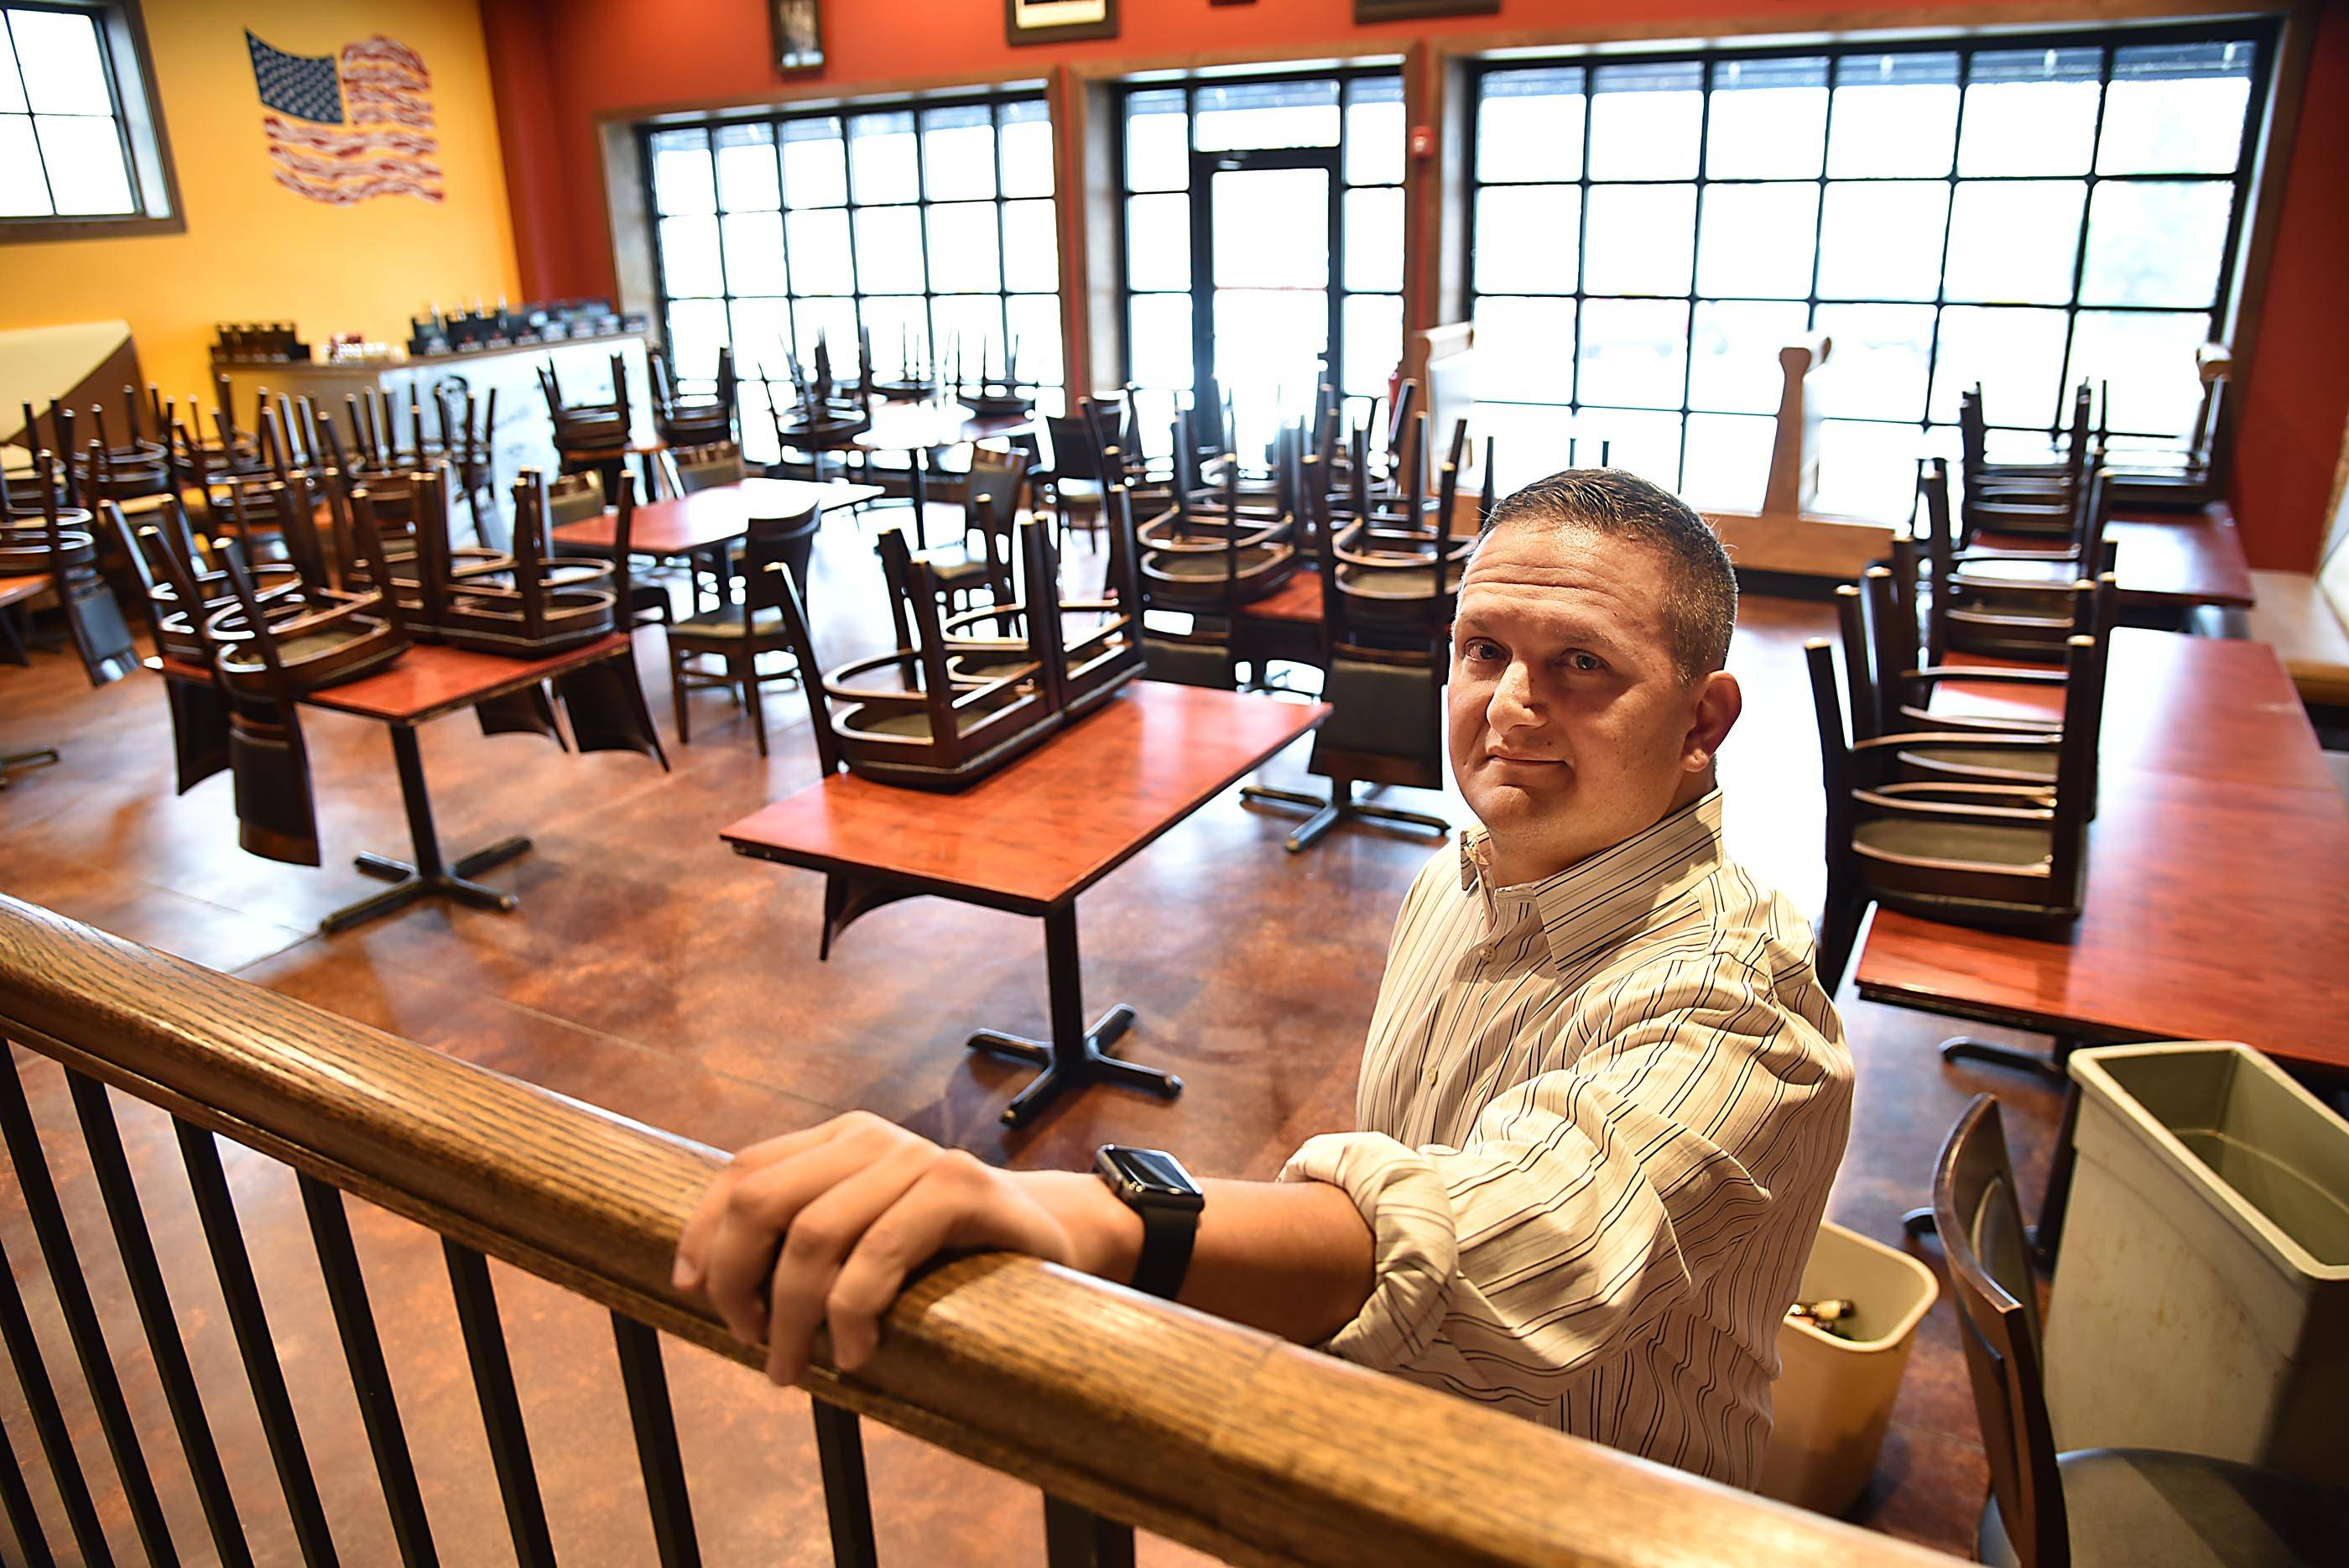 Loren Rattner is hoping to open River Street Tavern in downtown East Dundee before the end of the year.